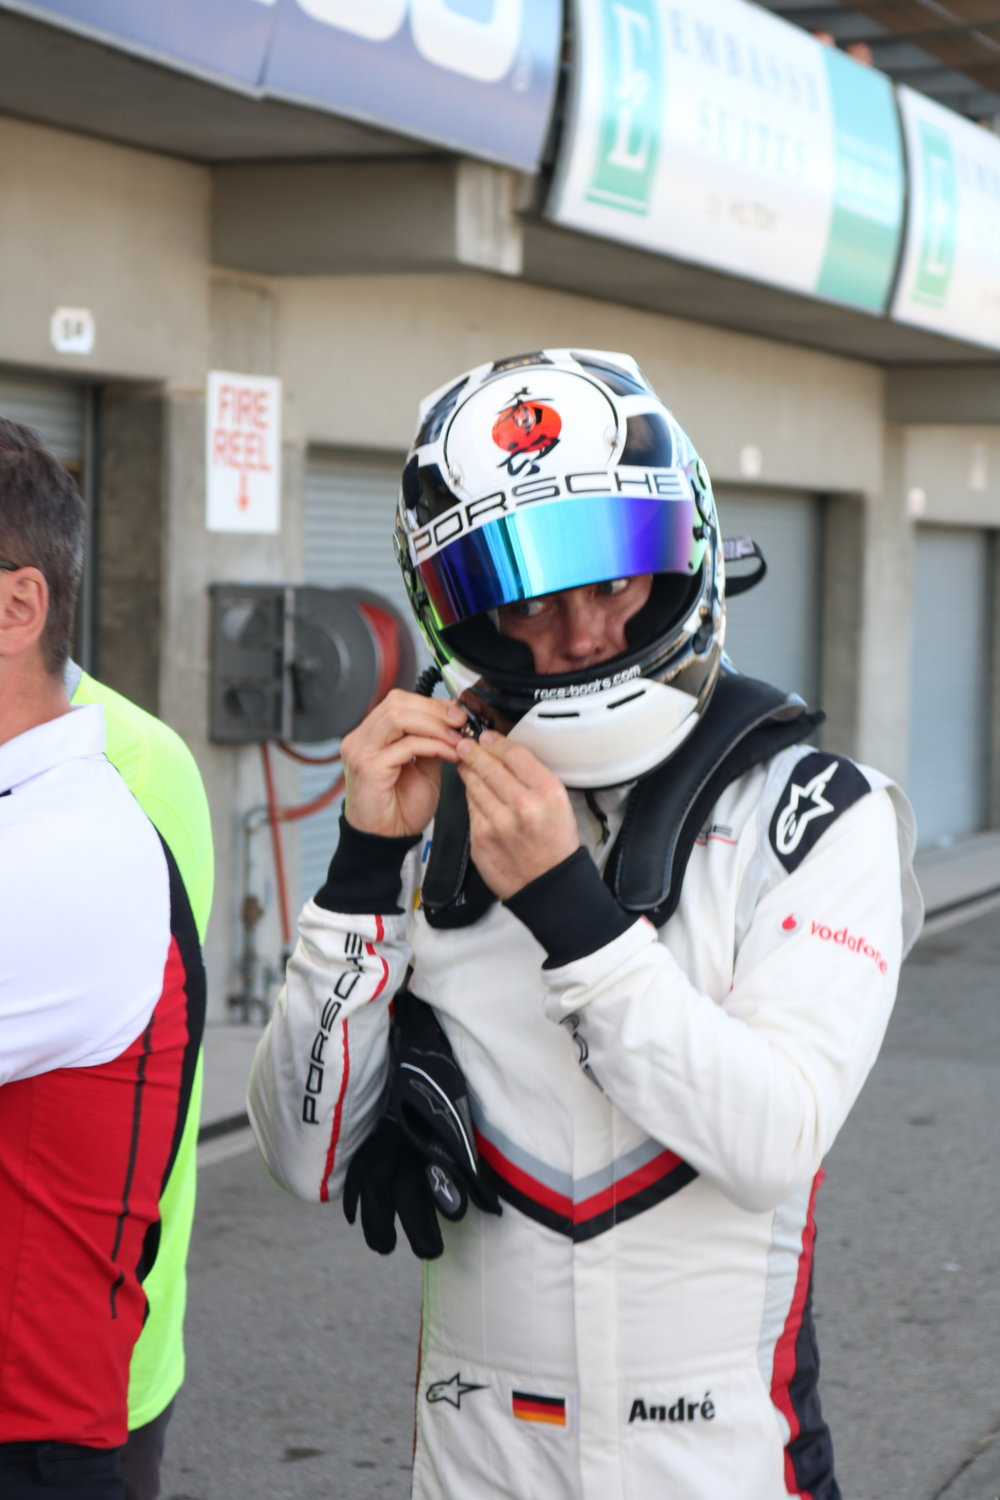 Andre Lotterer prepares for launch